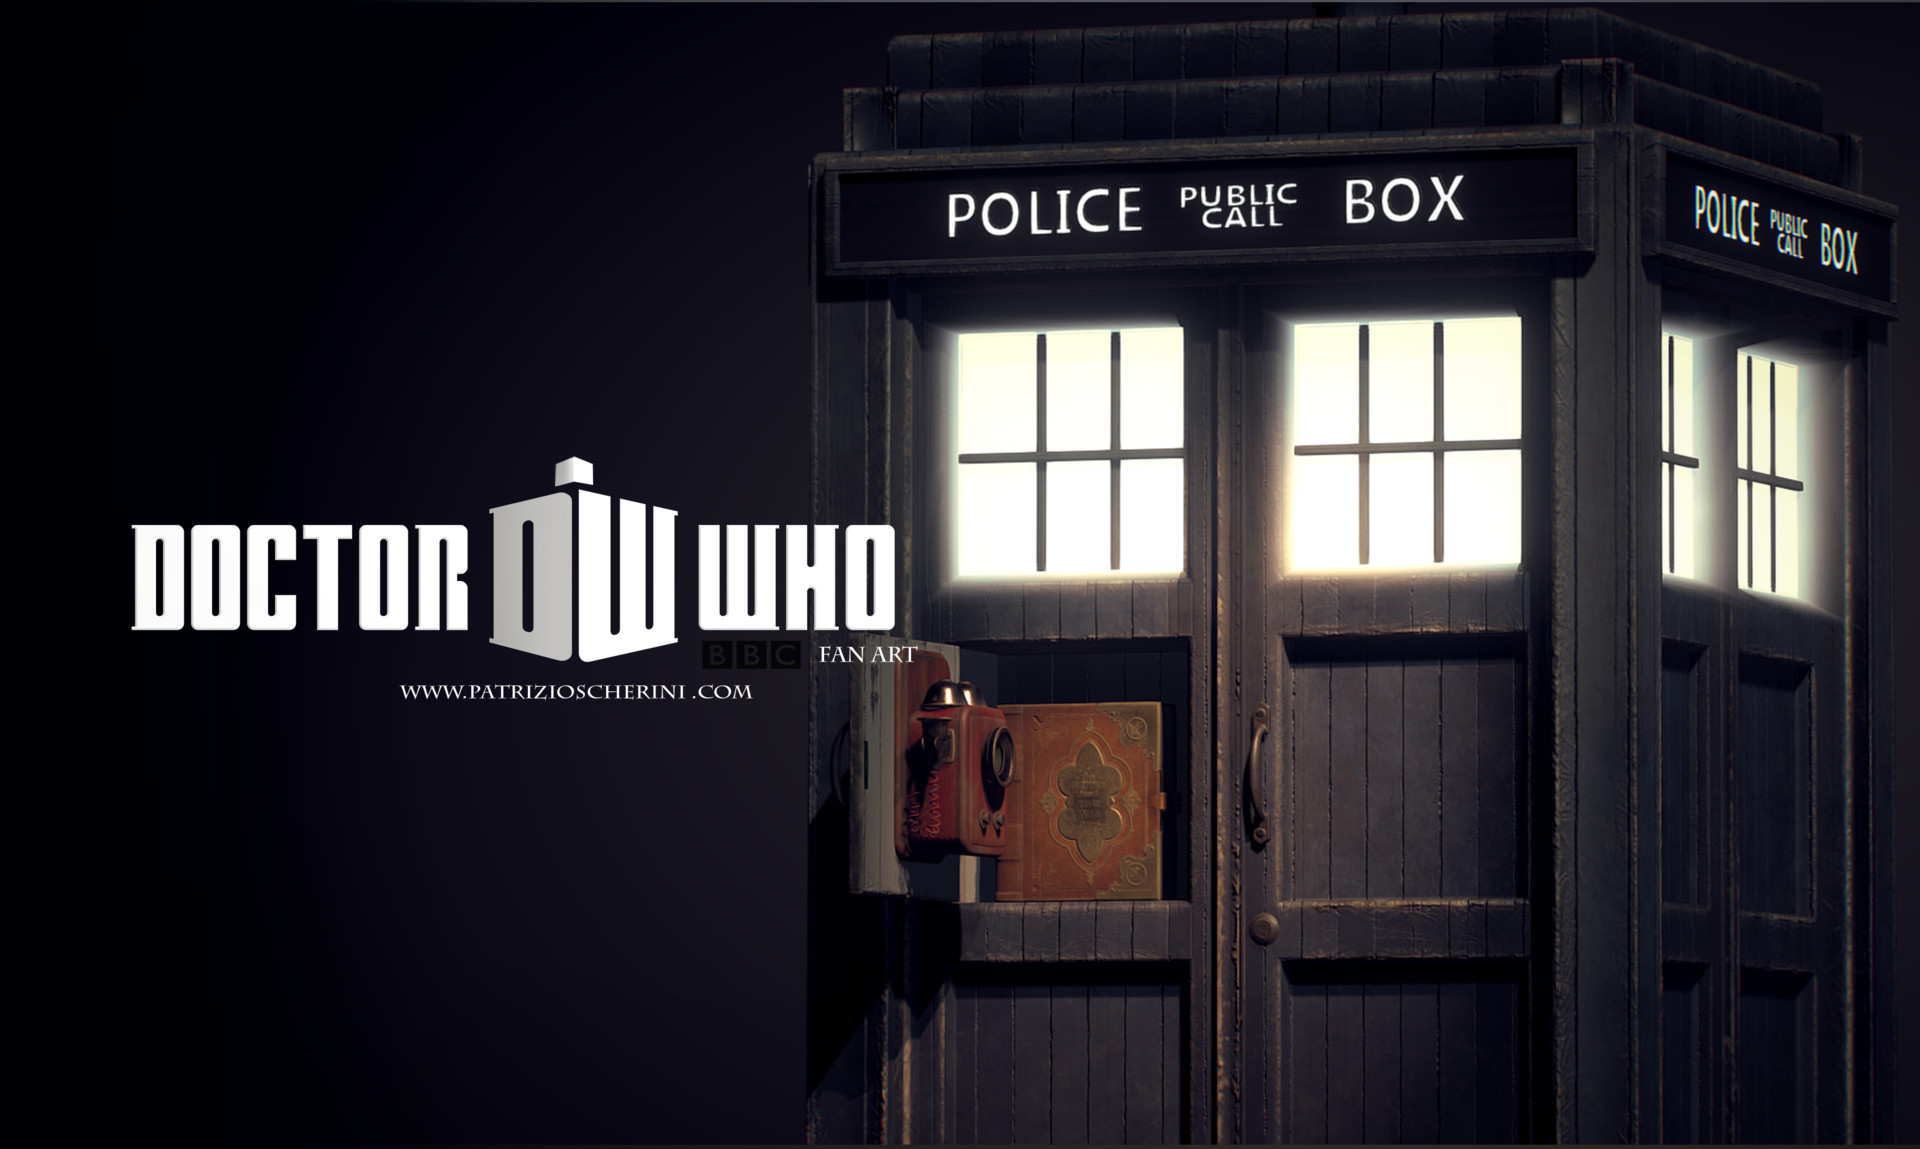 Patrizio scherini patrizioscherini doctorwho beauty 02